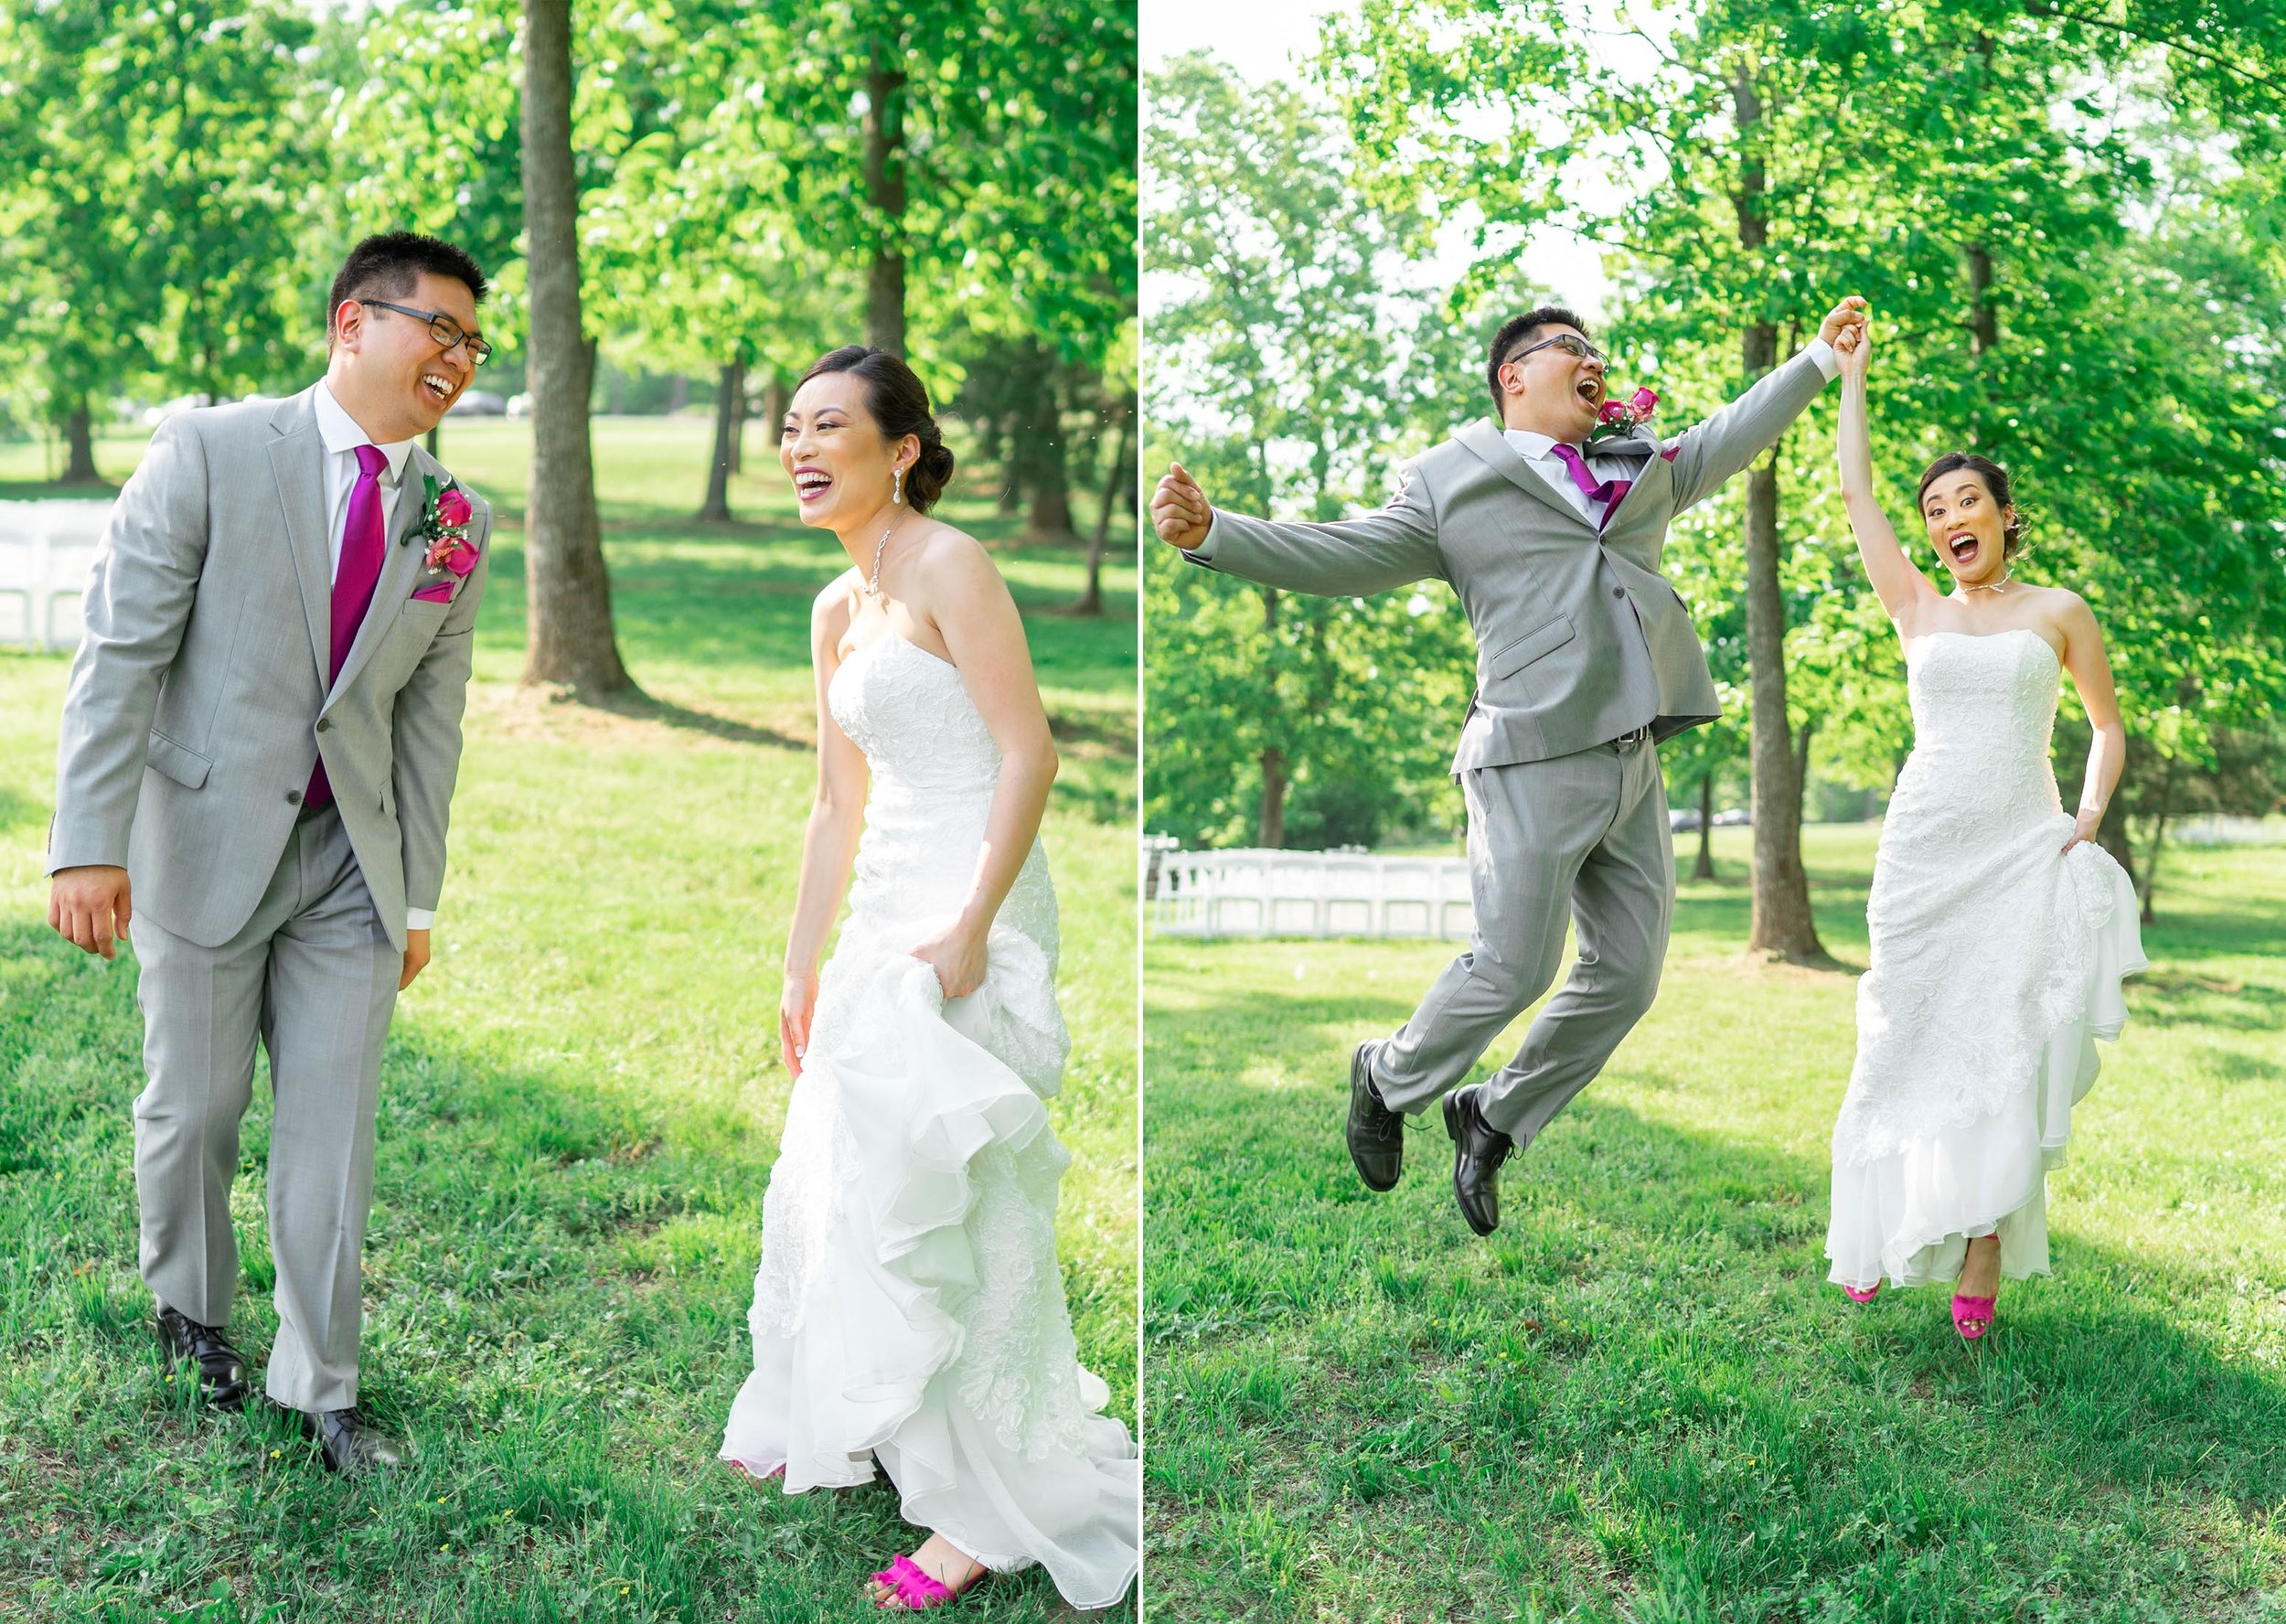 Bride and groom jumping in the air and laughing